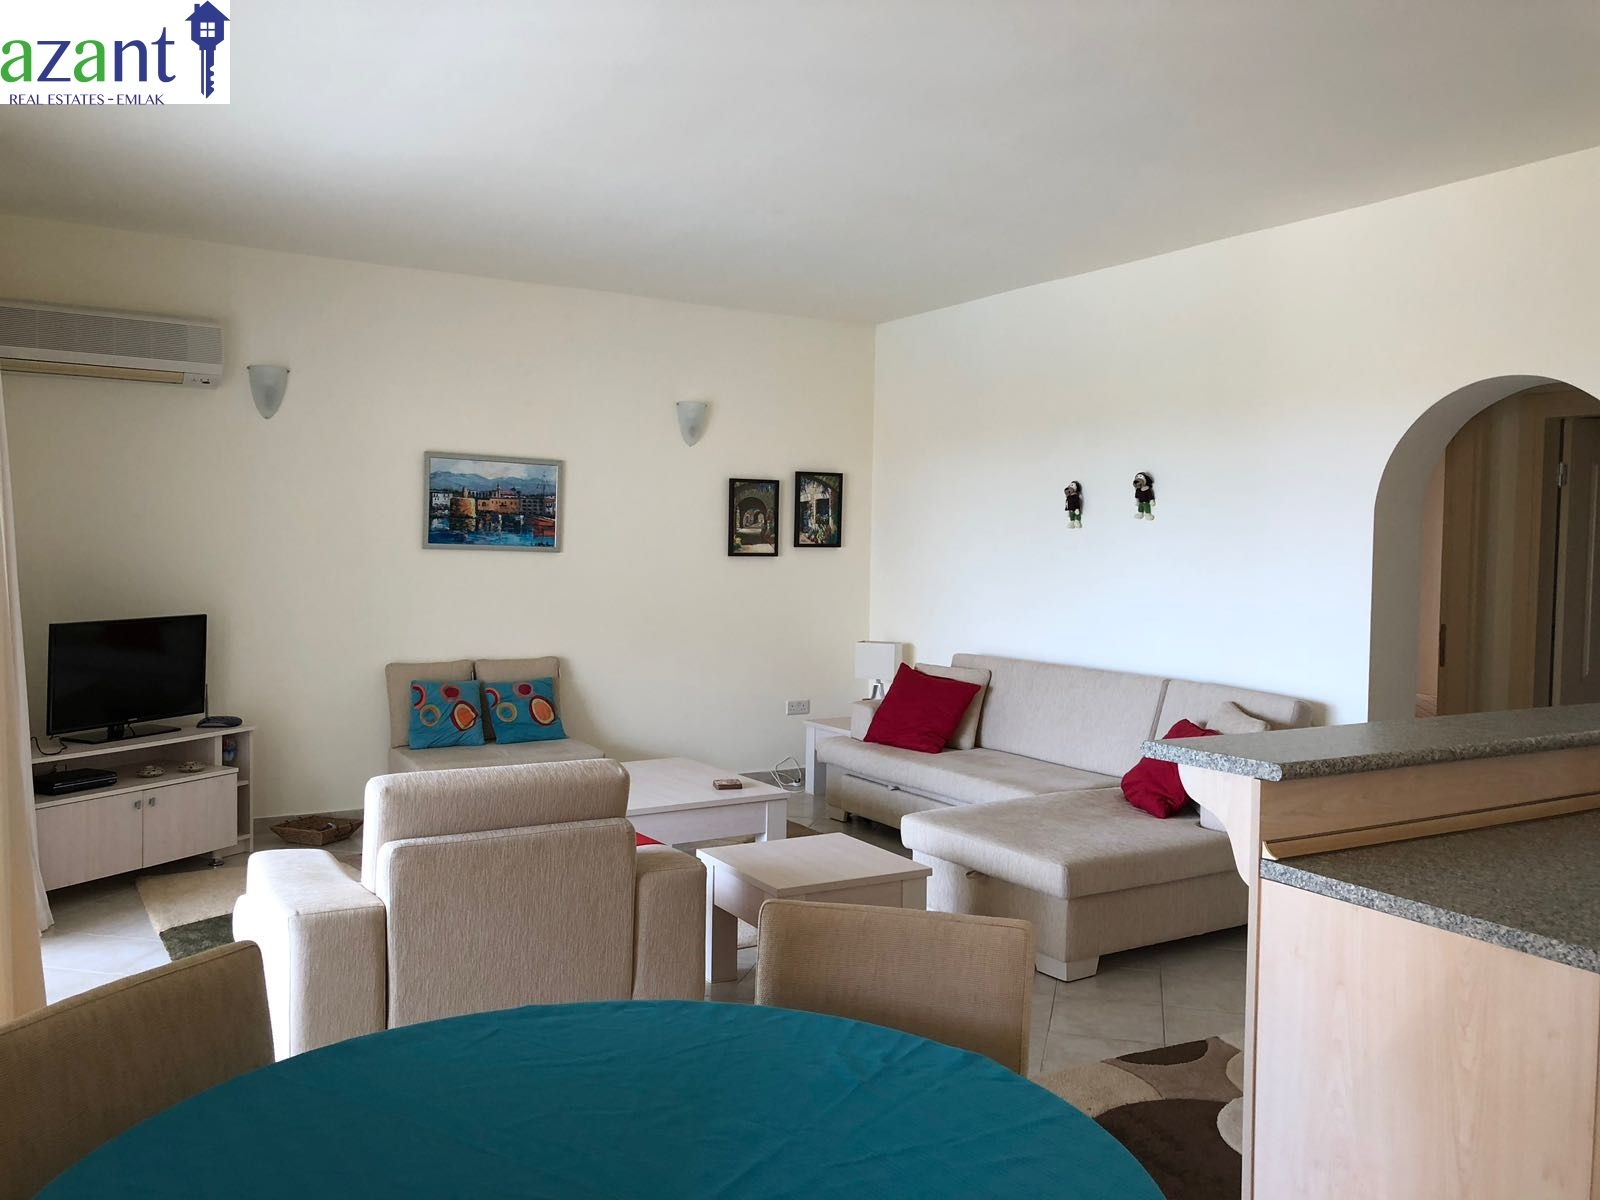 2 Bedroom apartment in Lapta with stunning views